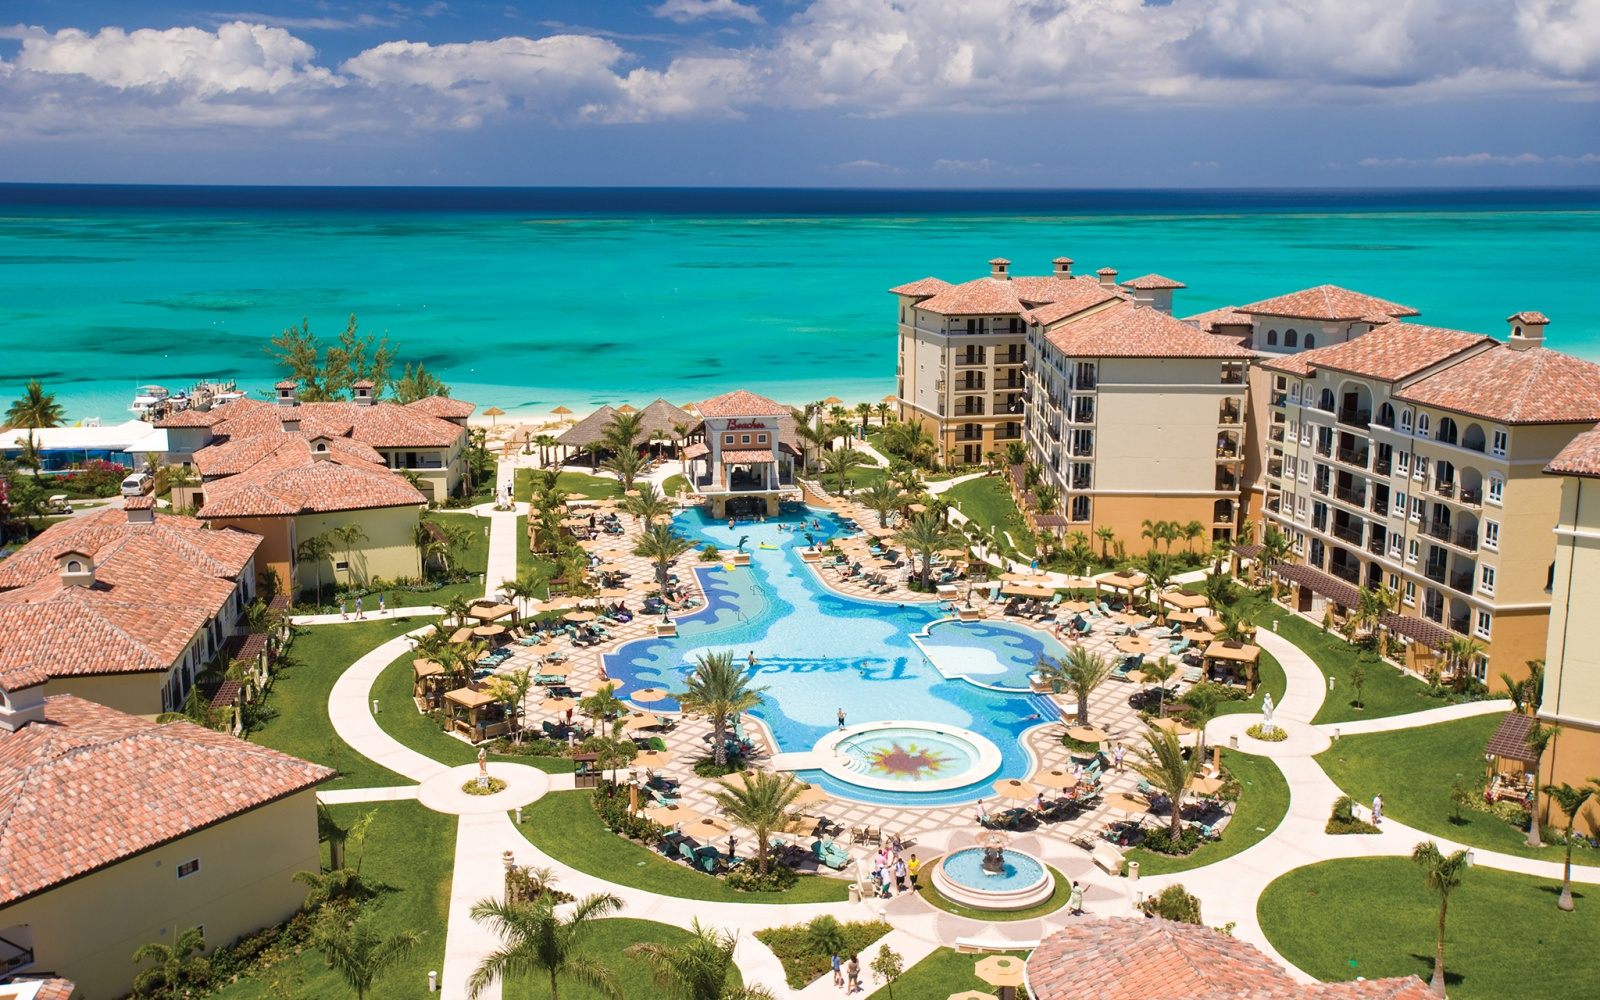 No. 2 Beaches Turks & Caicos Resort Villages & Spa